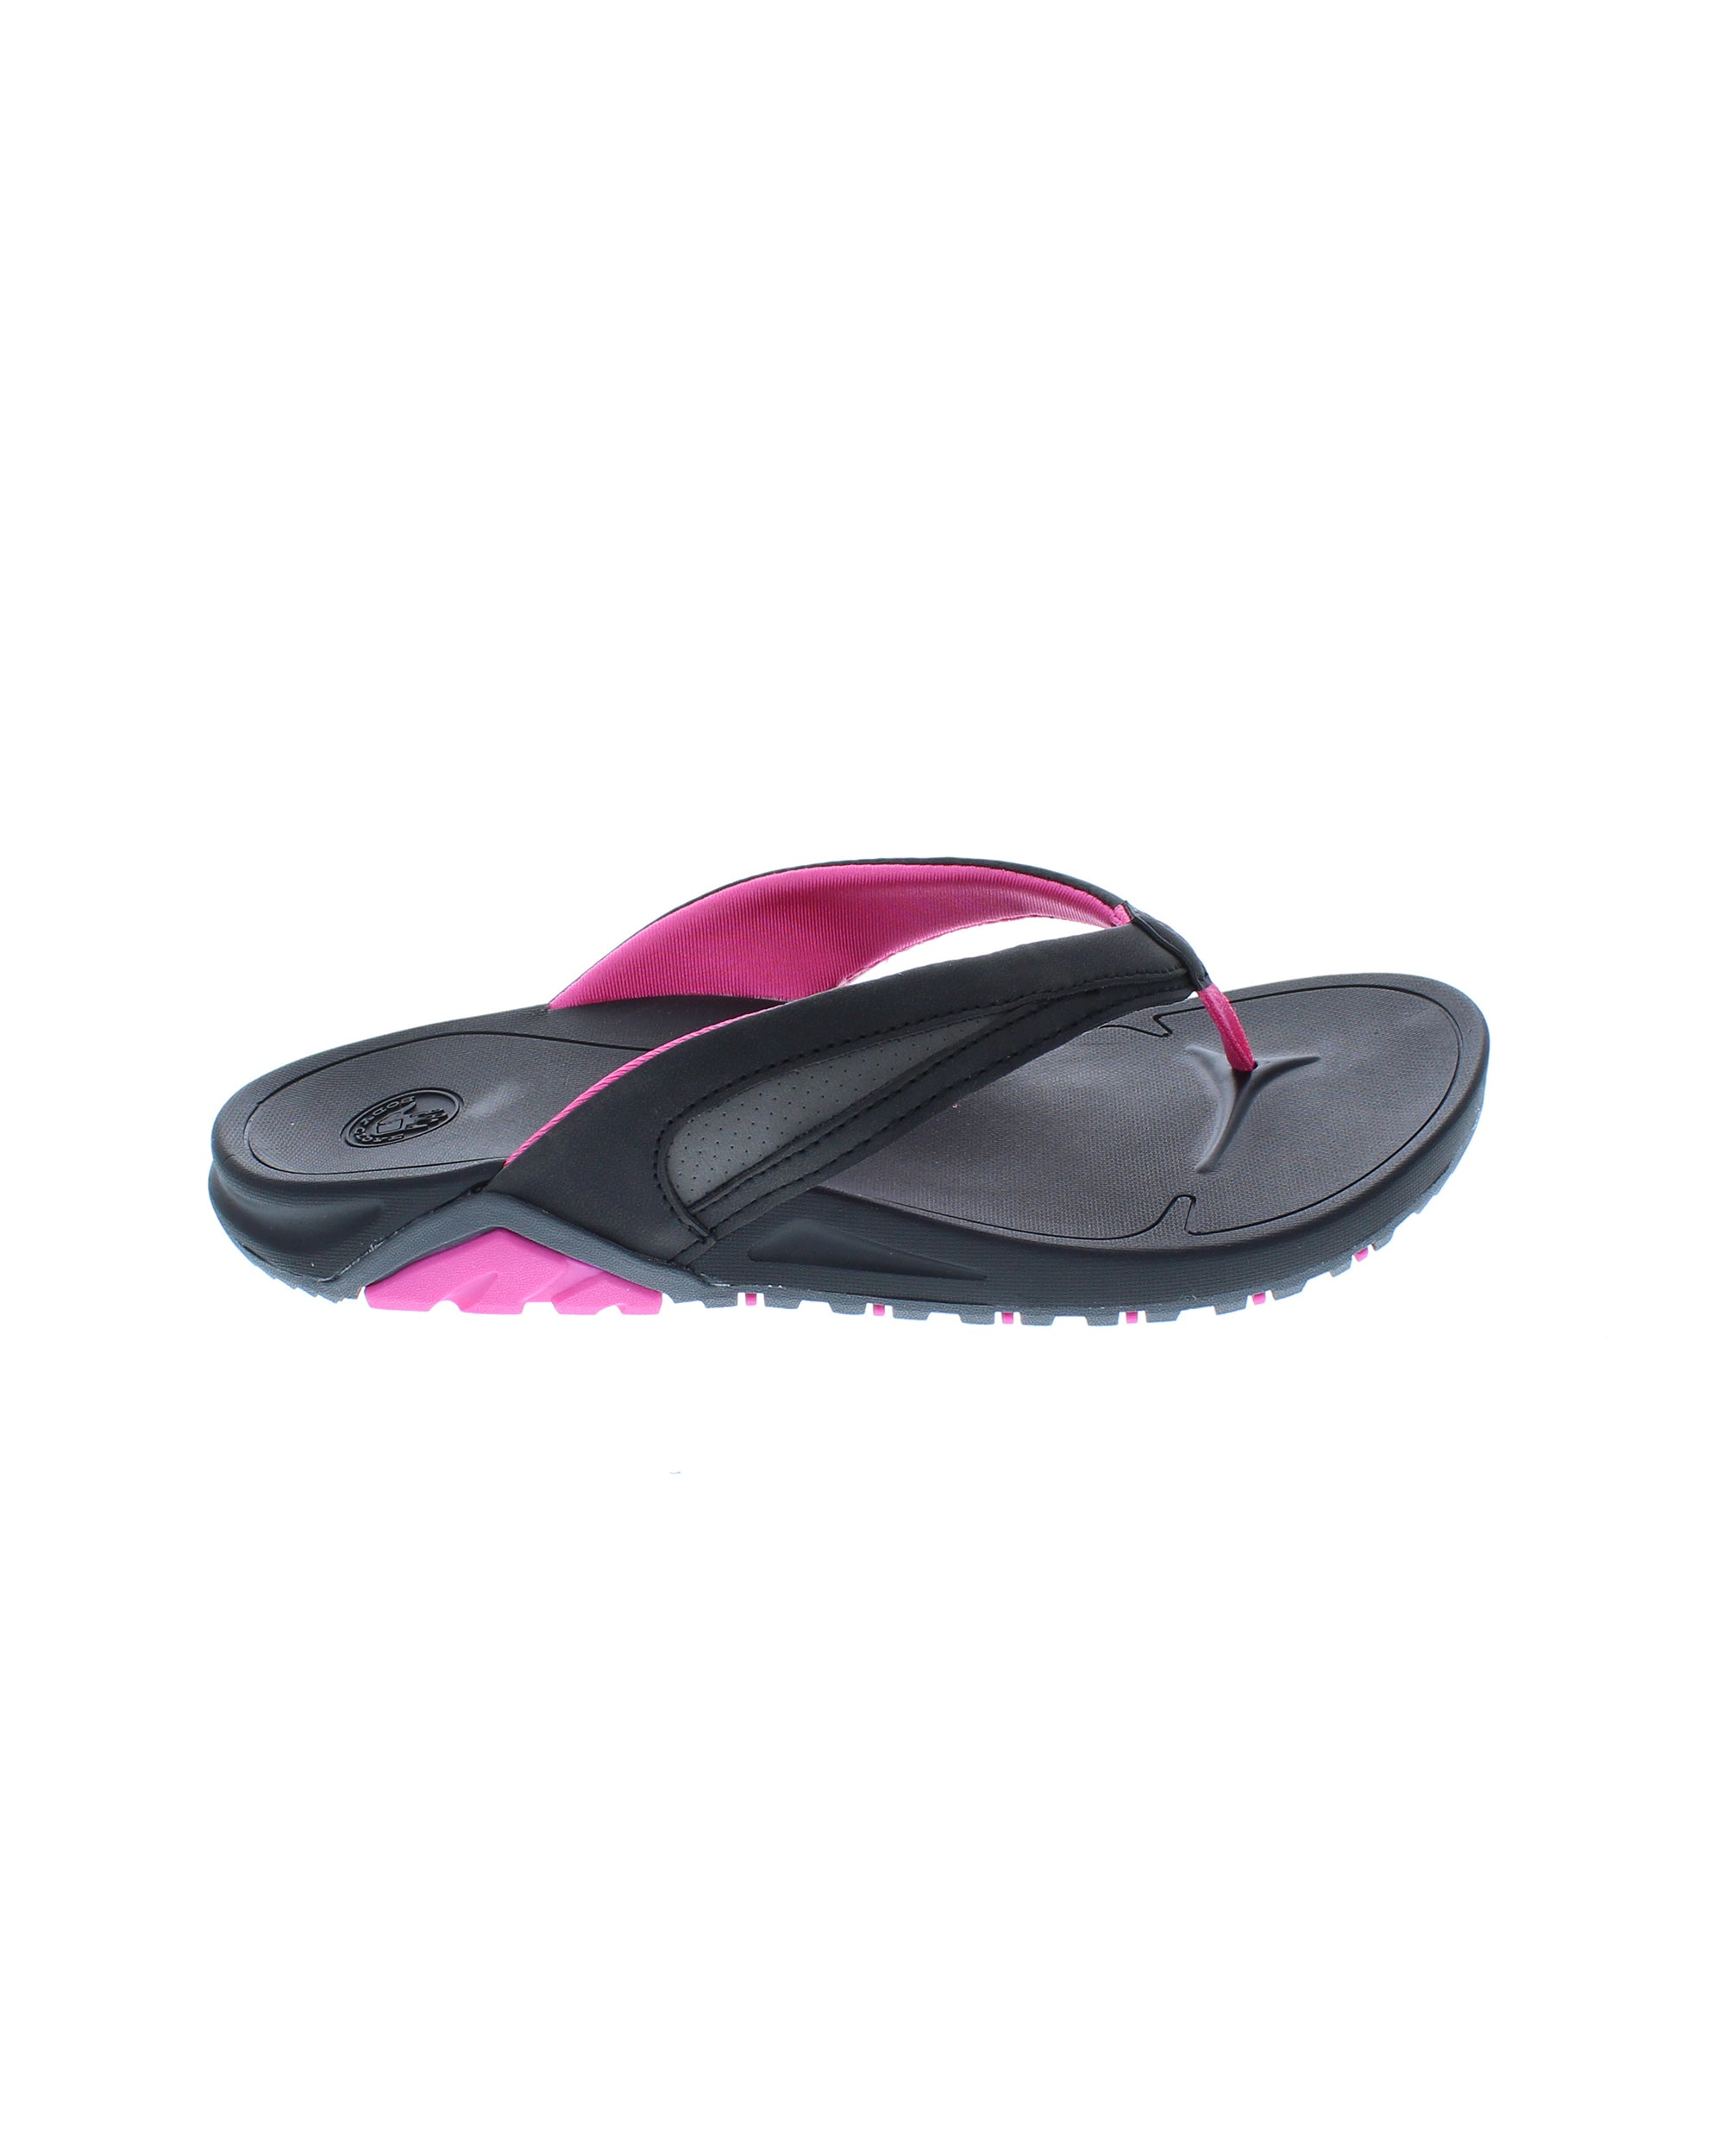 42f9716d92e Women's Sway Flip-Flop Sandals - Black/Flamingo Pink -